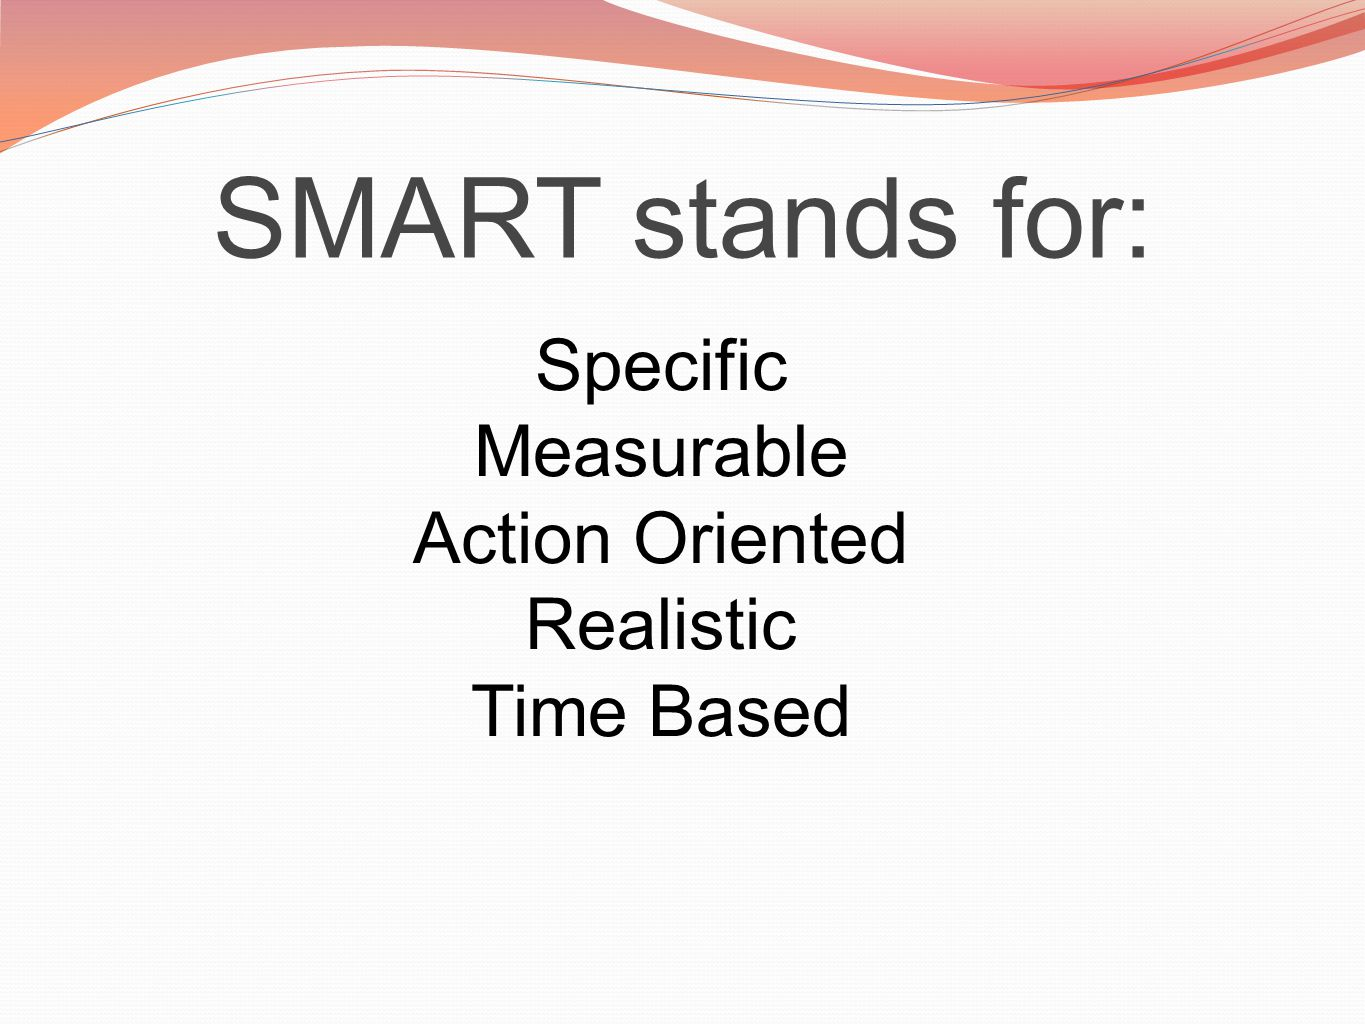 SMART stands for: Specific Measurable Action Oriented Realistic Time Based